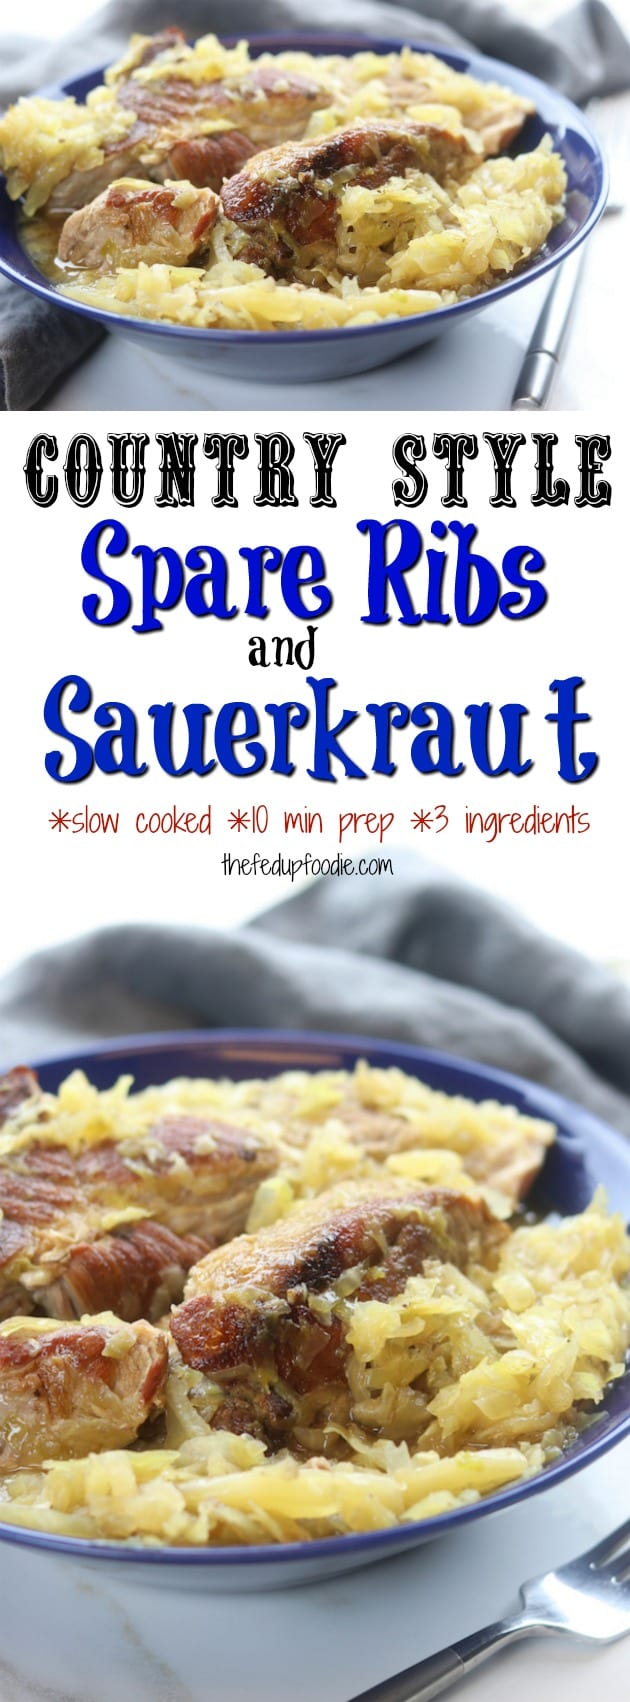 An absolute comfort meal, Country Style Pork Spare Ribs and Sauerkraut recipe creates extremely tender caramelized pork nestled into tangy sauerkraut. With just 3 ingredients and 2 steps this family favorite recipe is an extremely easy slow cooked meal. https://www.thefedupfoodie.com